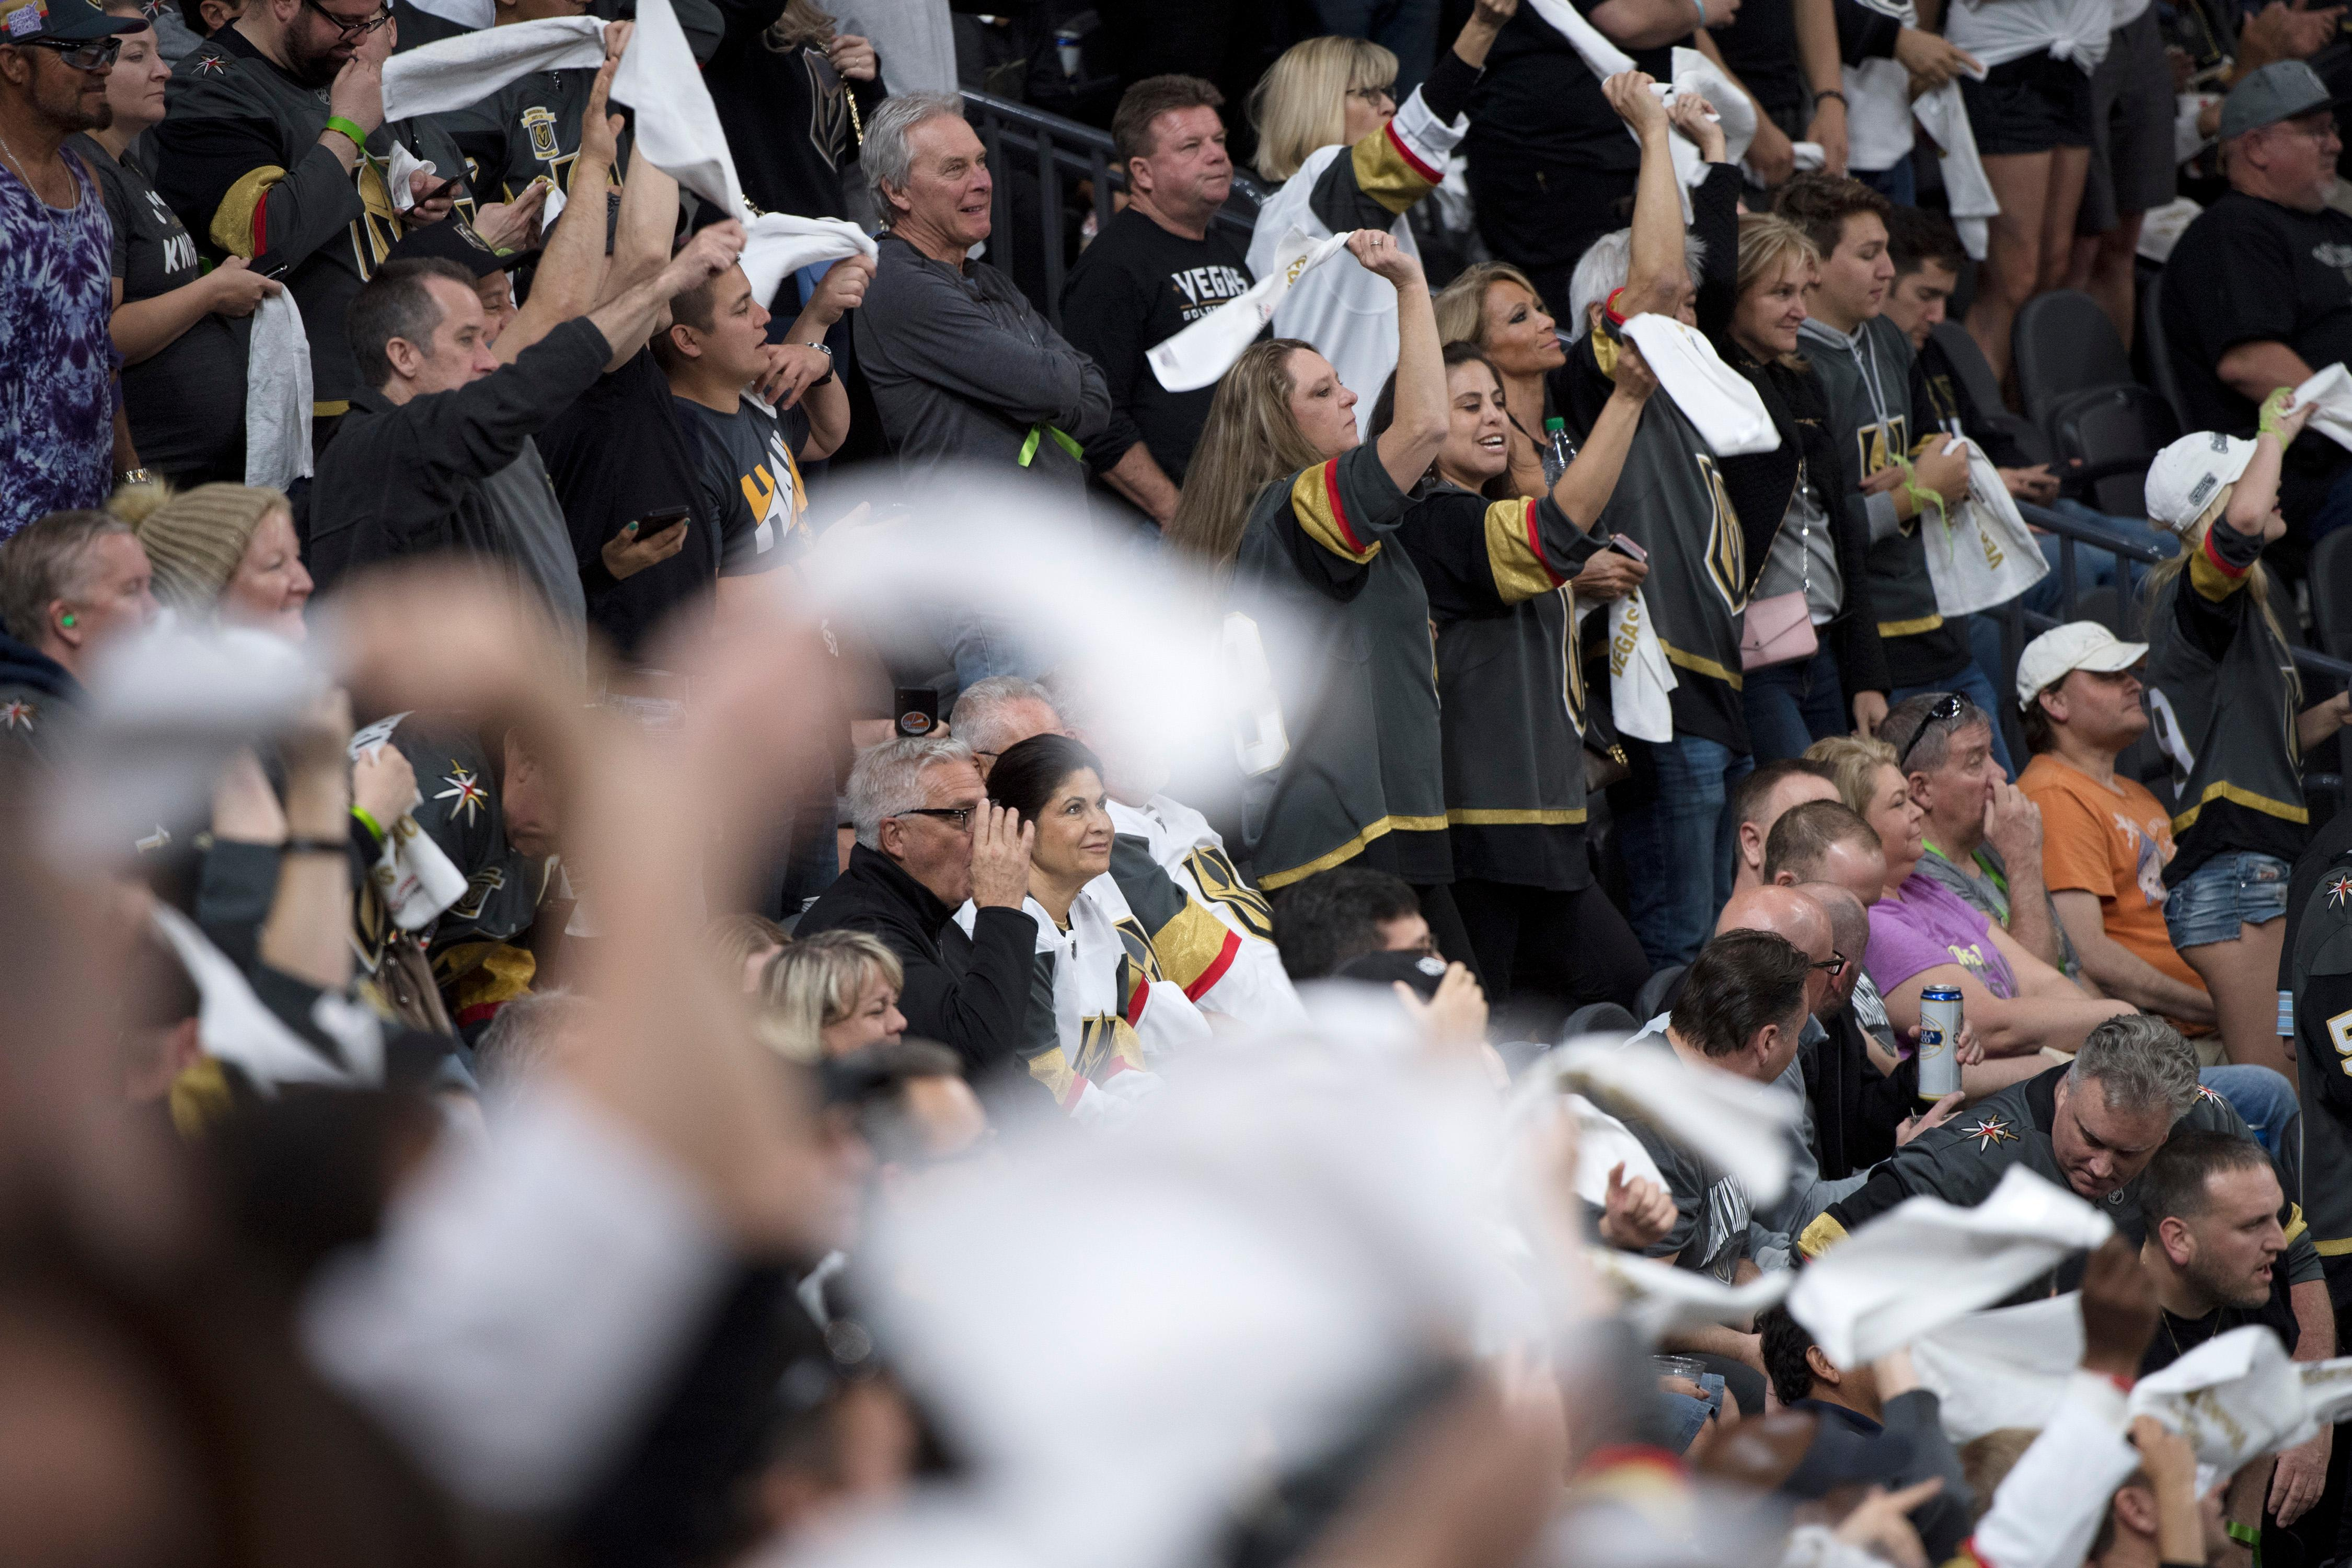 Vegas Golden Knights fans cheer during the third period of Game 1 of their NHL hockey first-round playoff series against the Los Angeles Kings Wednesday, April 11, 2018 at T-Mobile Arena. The Knights won 1-0. CREDIT: Sam Morris/Las Vegas News Bureau